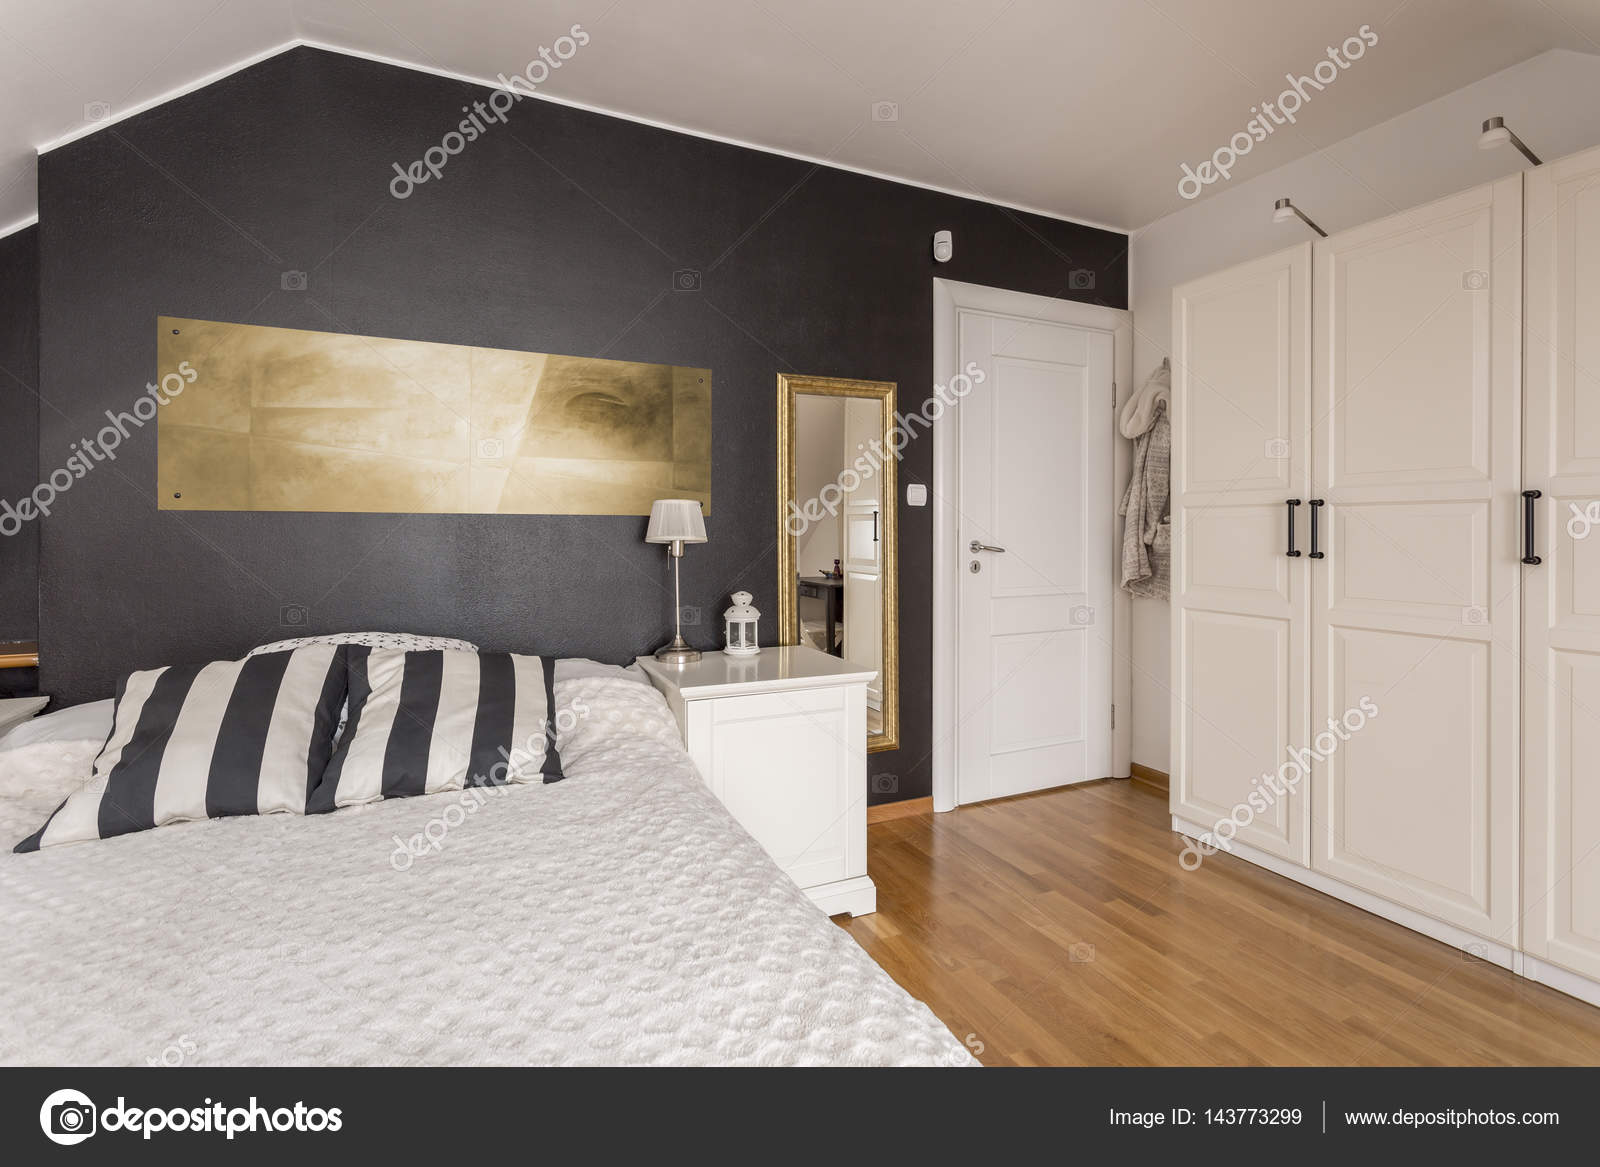 Black and gold bedroom designs | Black and white bedroom ...